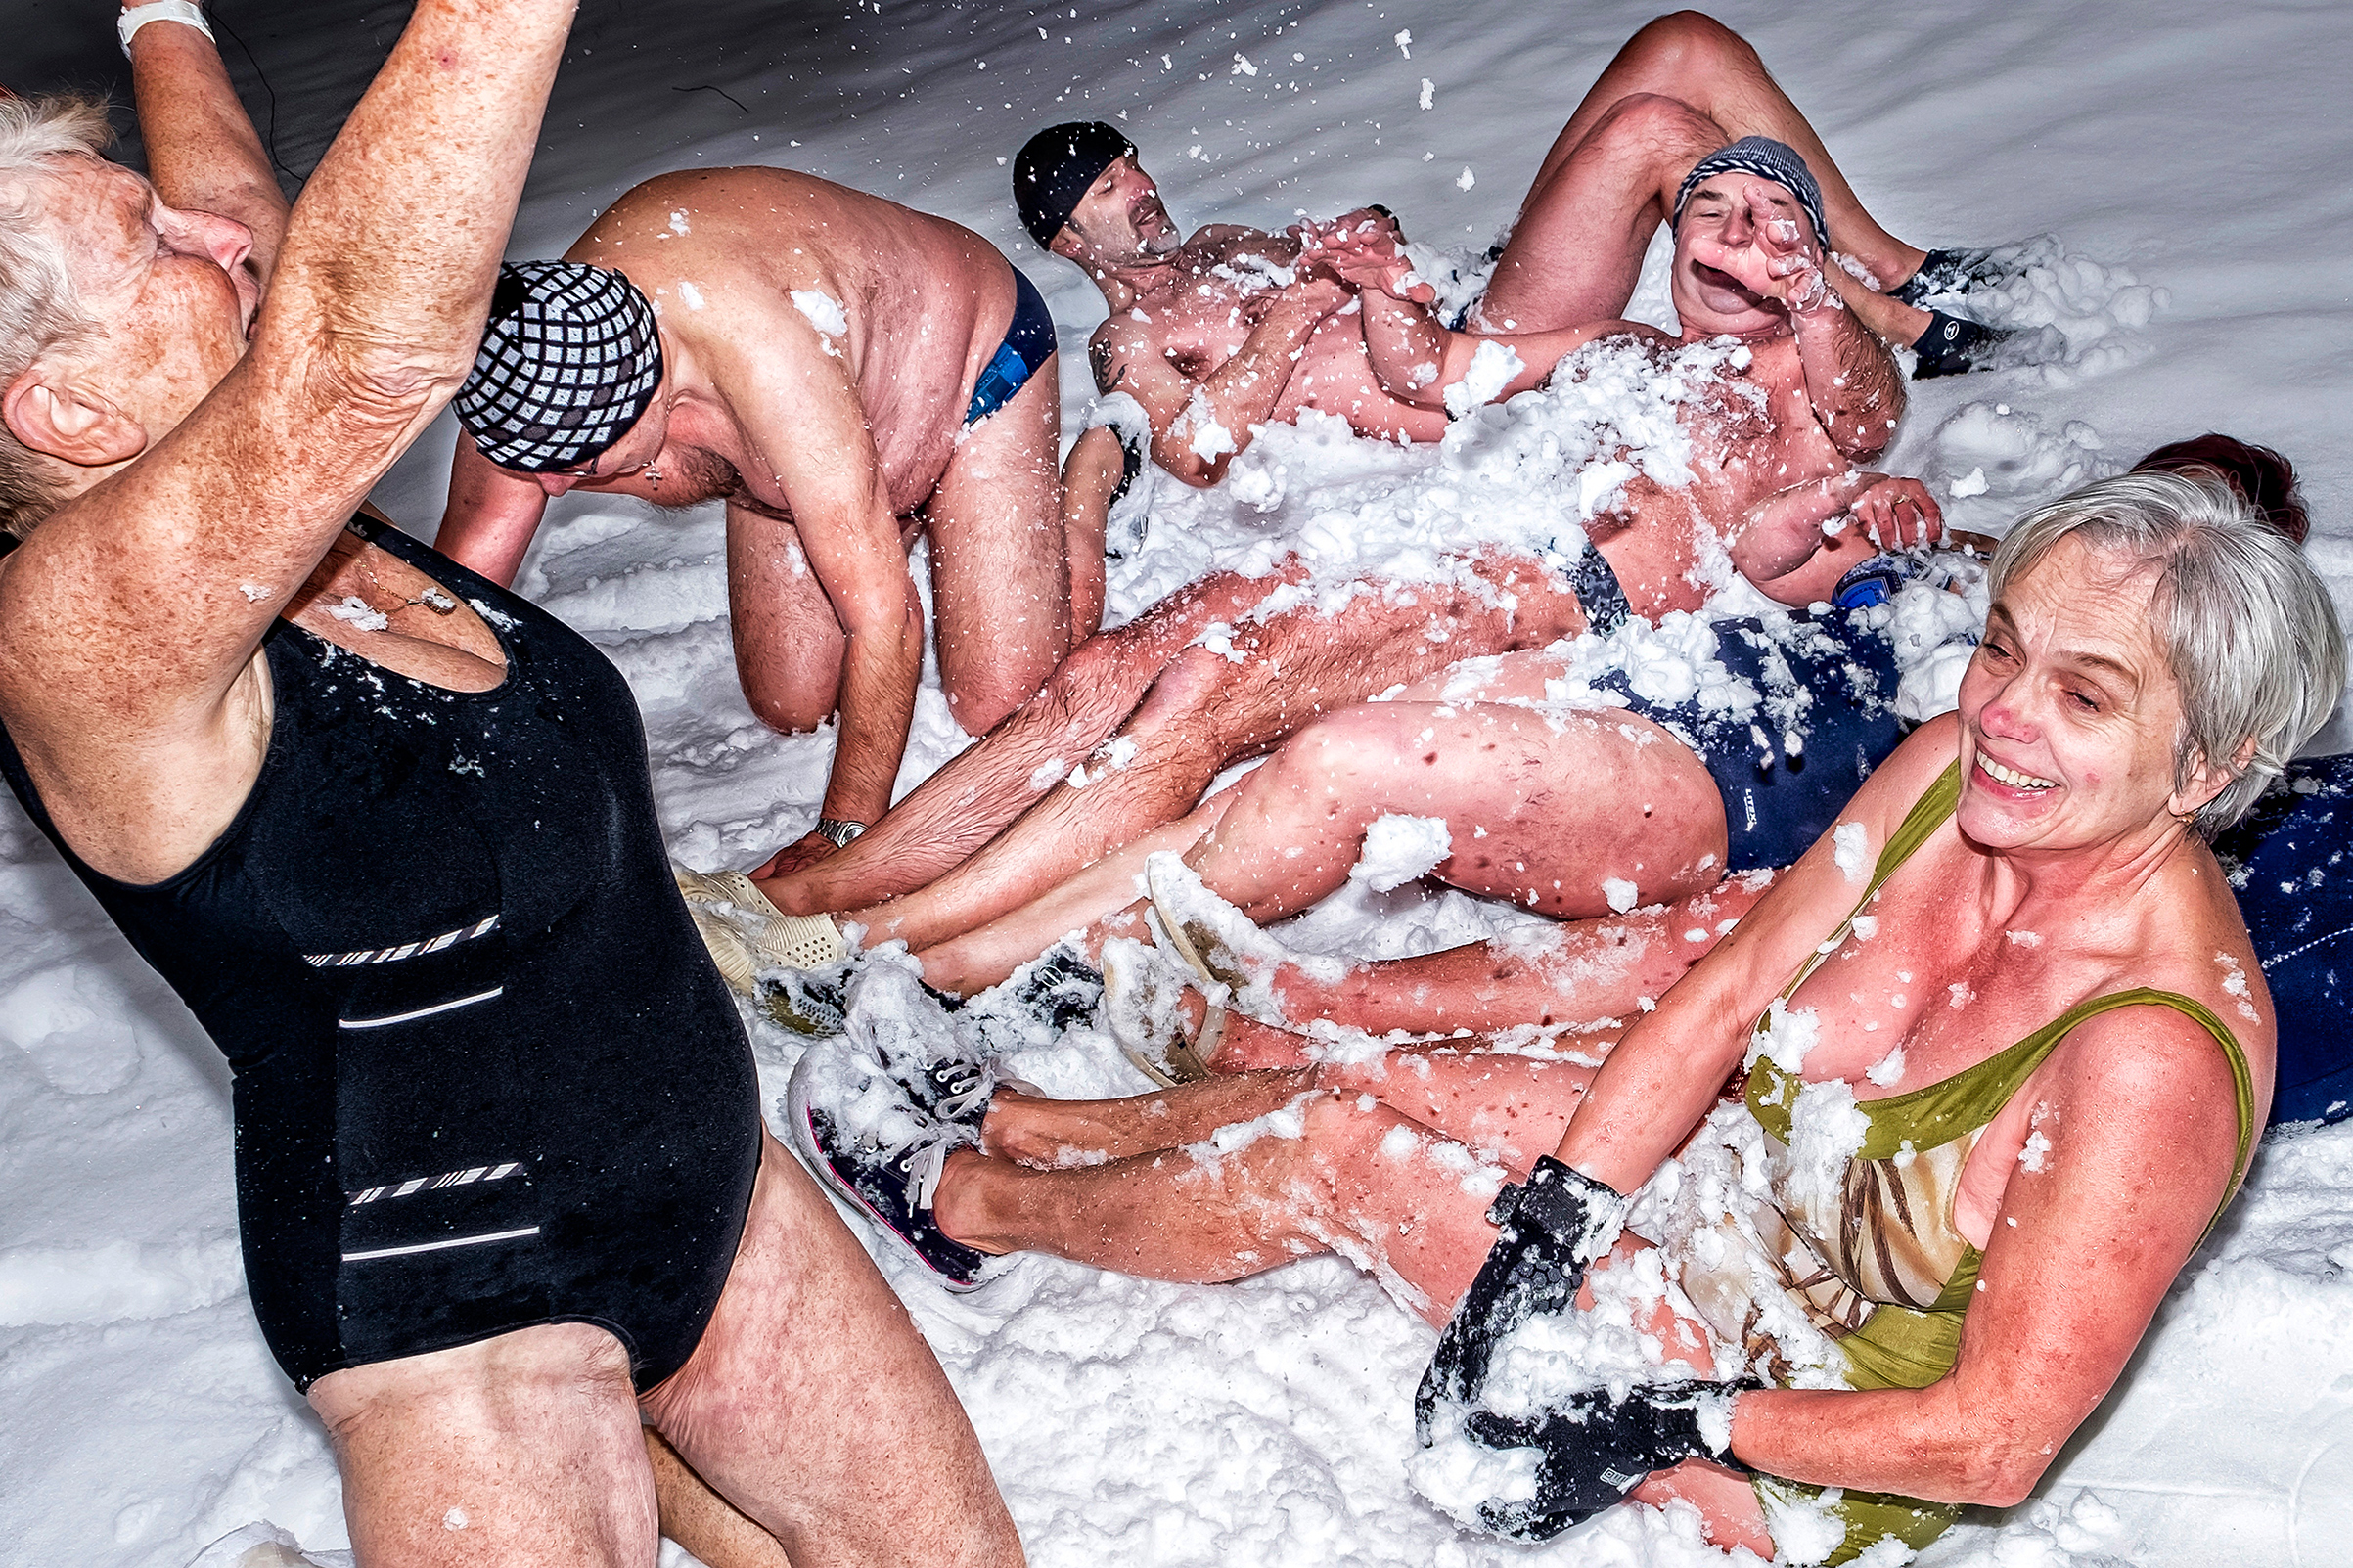 Ice swimmers often finish their meet-ups by rolling in the snow—then warming up together by a stove